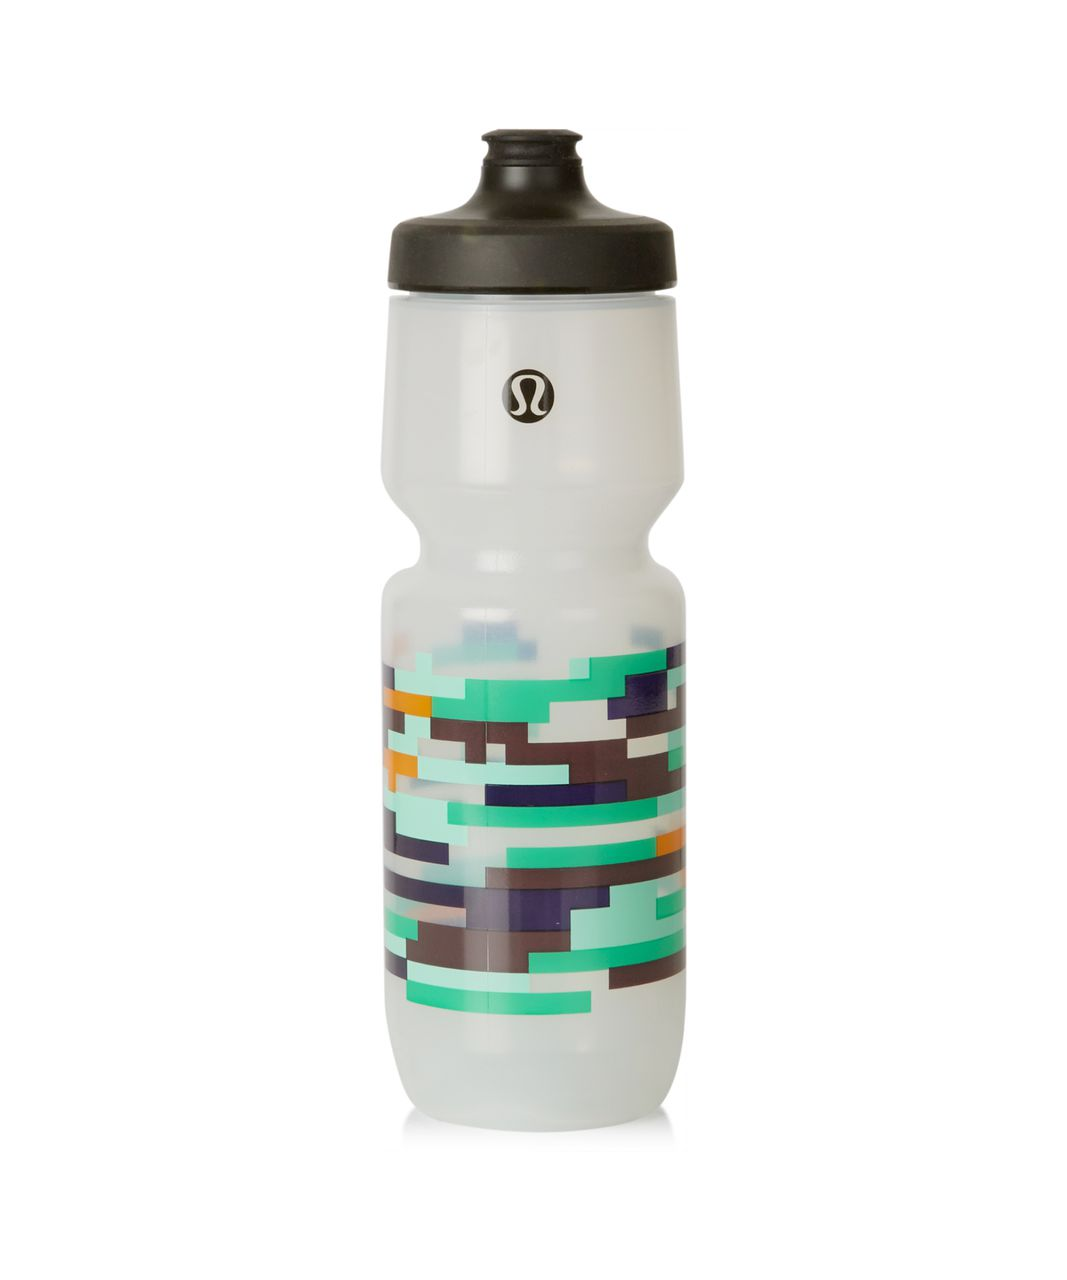 Lululemon Purist Cycling Waterbottle - Super Resolution